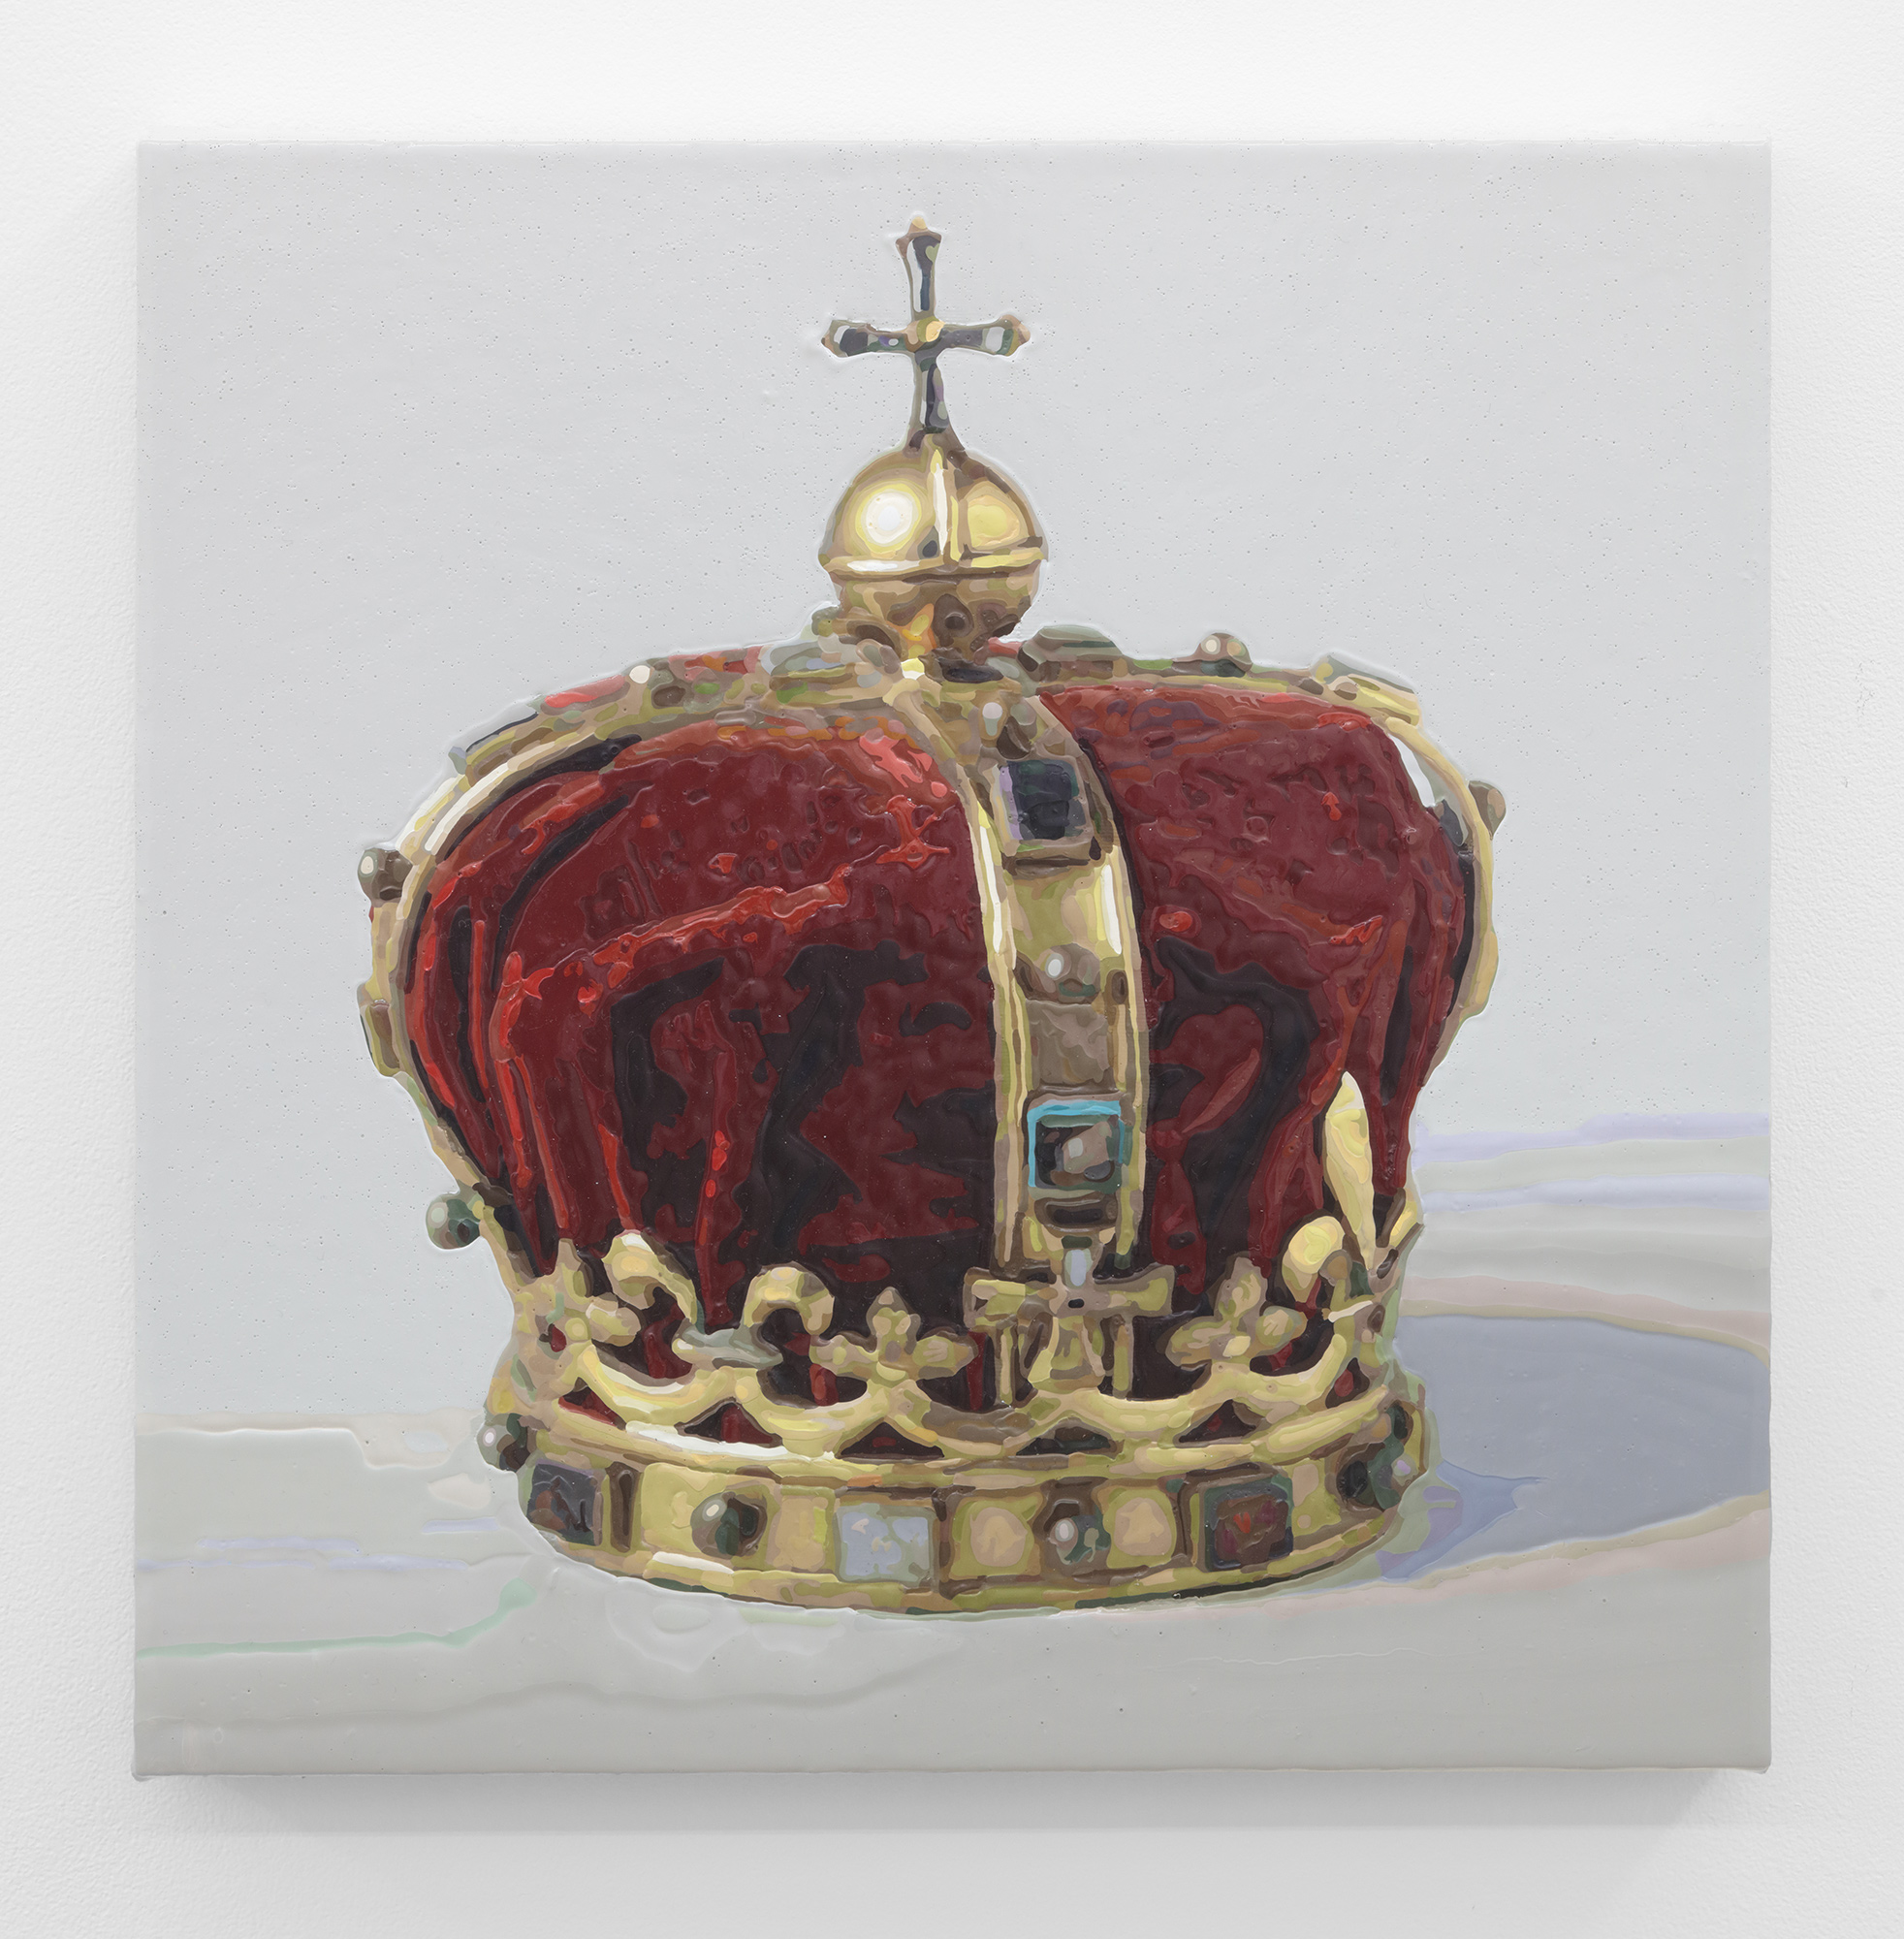 Dorian FitzGerald,  Crown For The King Of Adra, circa 1664 . 2019, acrylic on canvas mounted to board, 16 x 16 inches